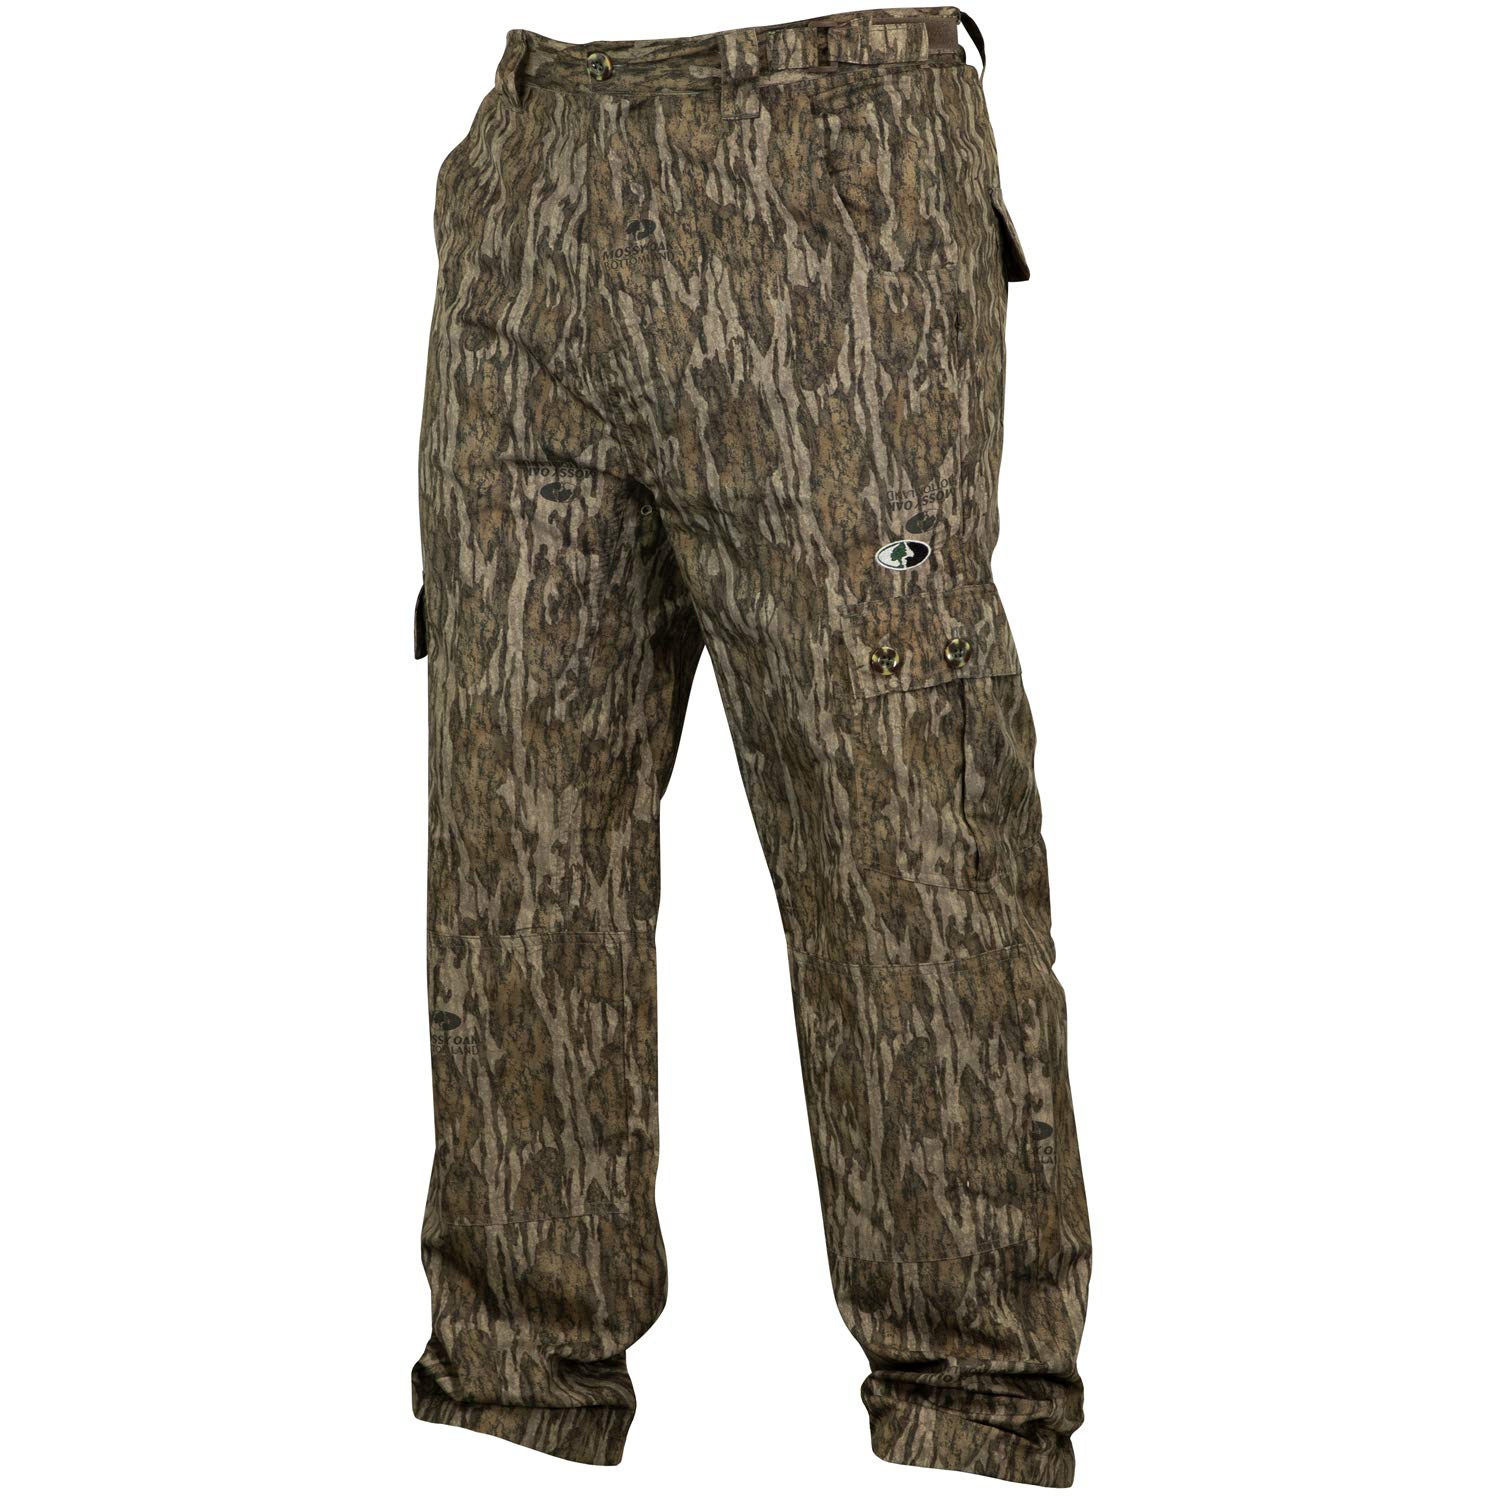 Mossy Oak Camo Lightweight Hunting Pants for Men Camouflage Clothing, XX-Large, Bottomland by Mossy Oak